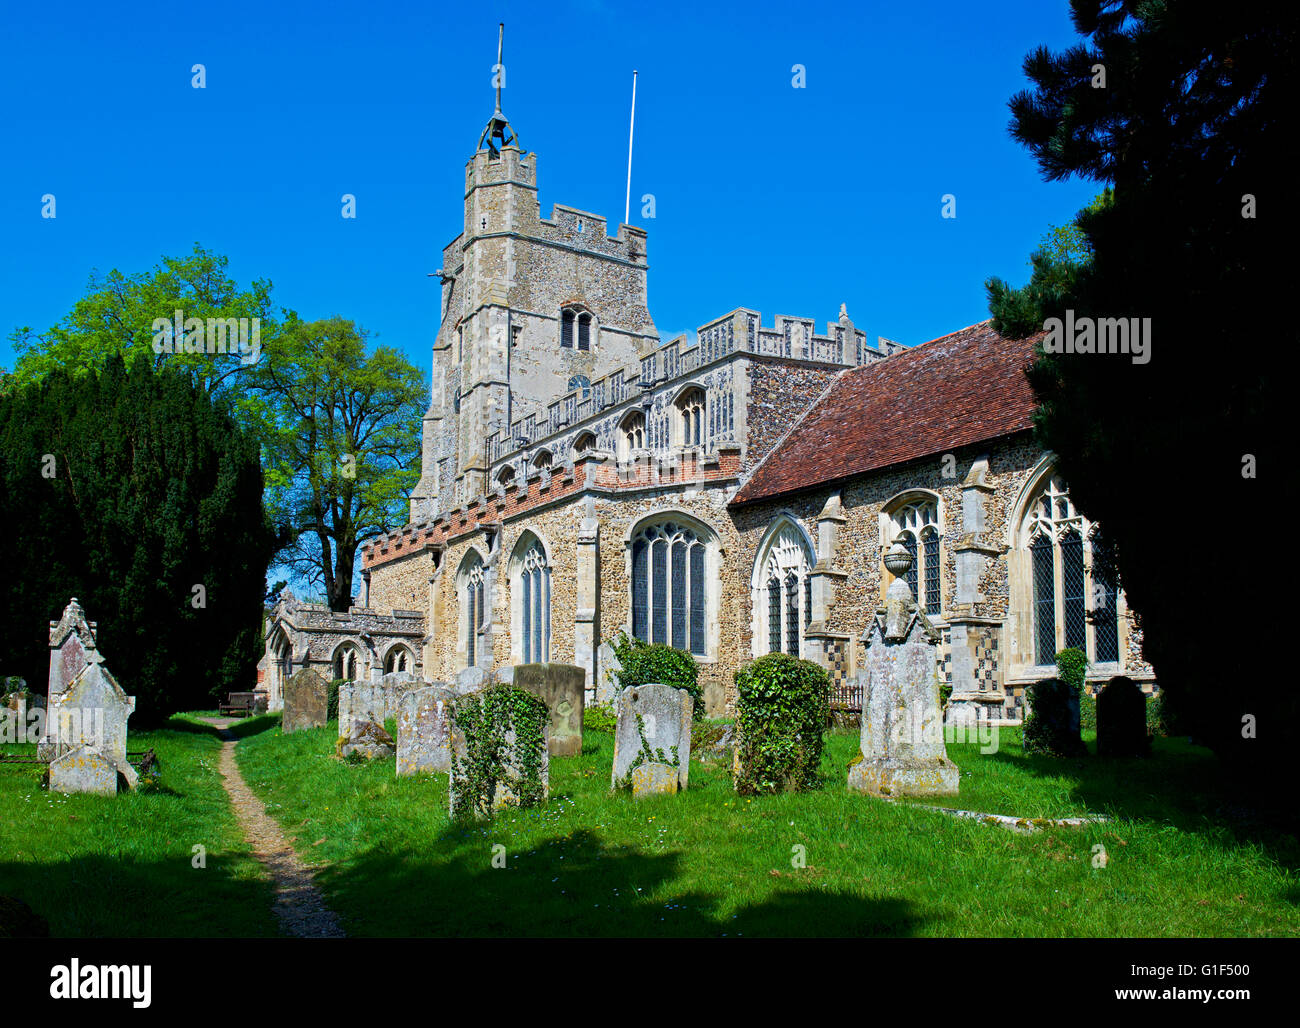 St Mary's Church, in the village of Cavendish, Suffolk, England UK - Stock Image